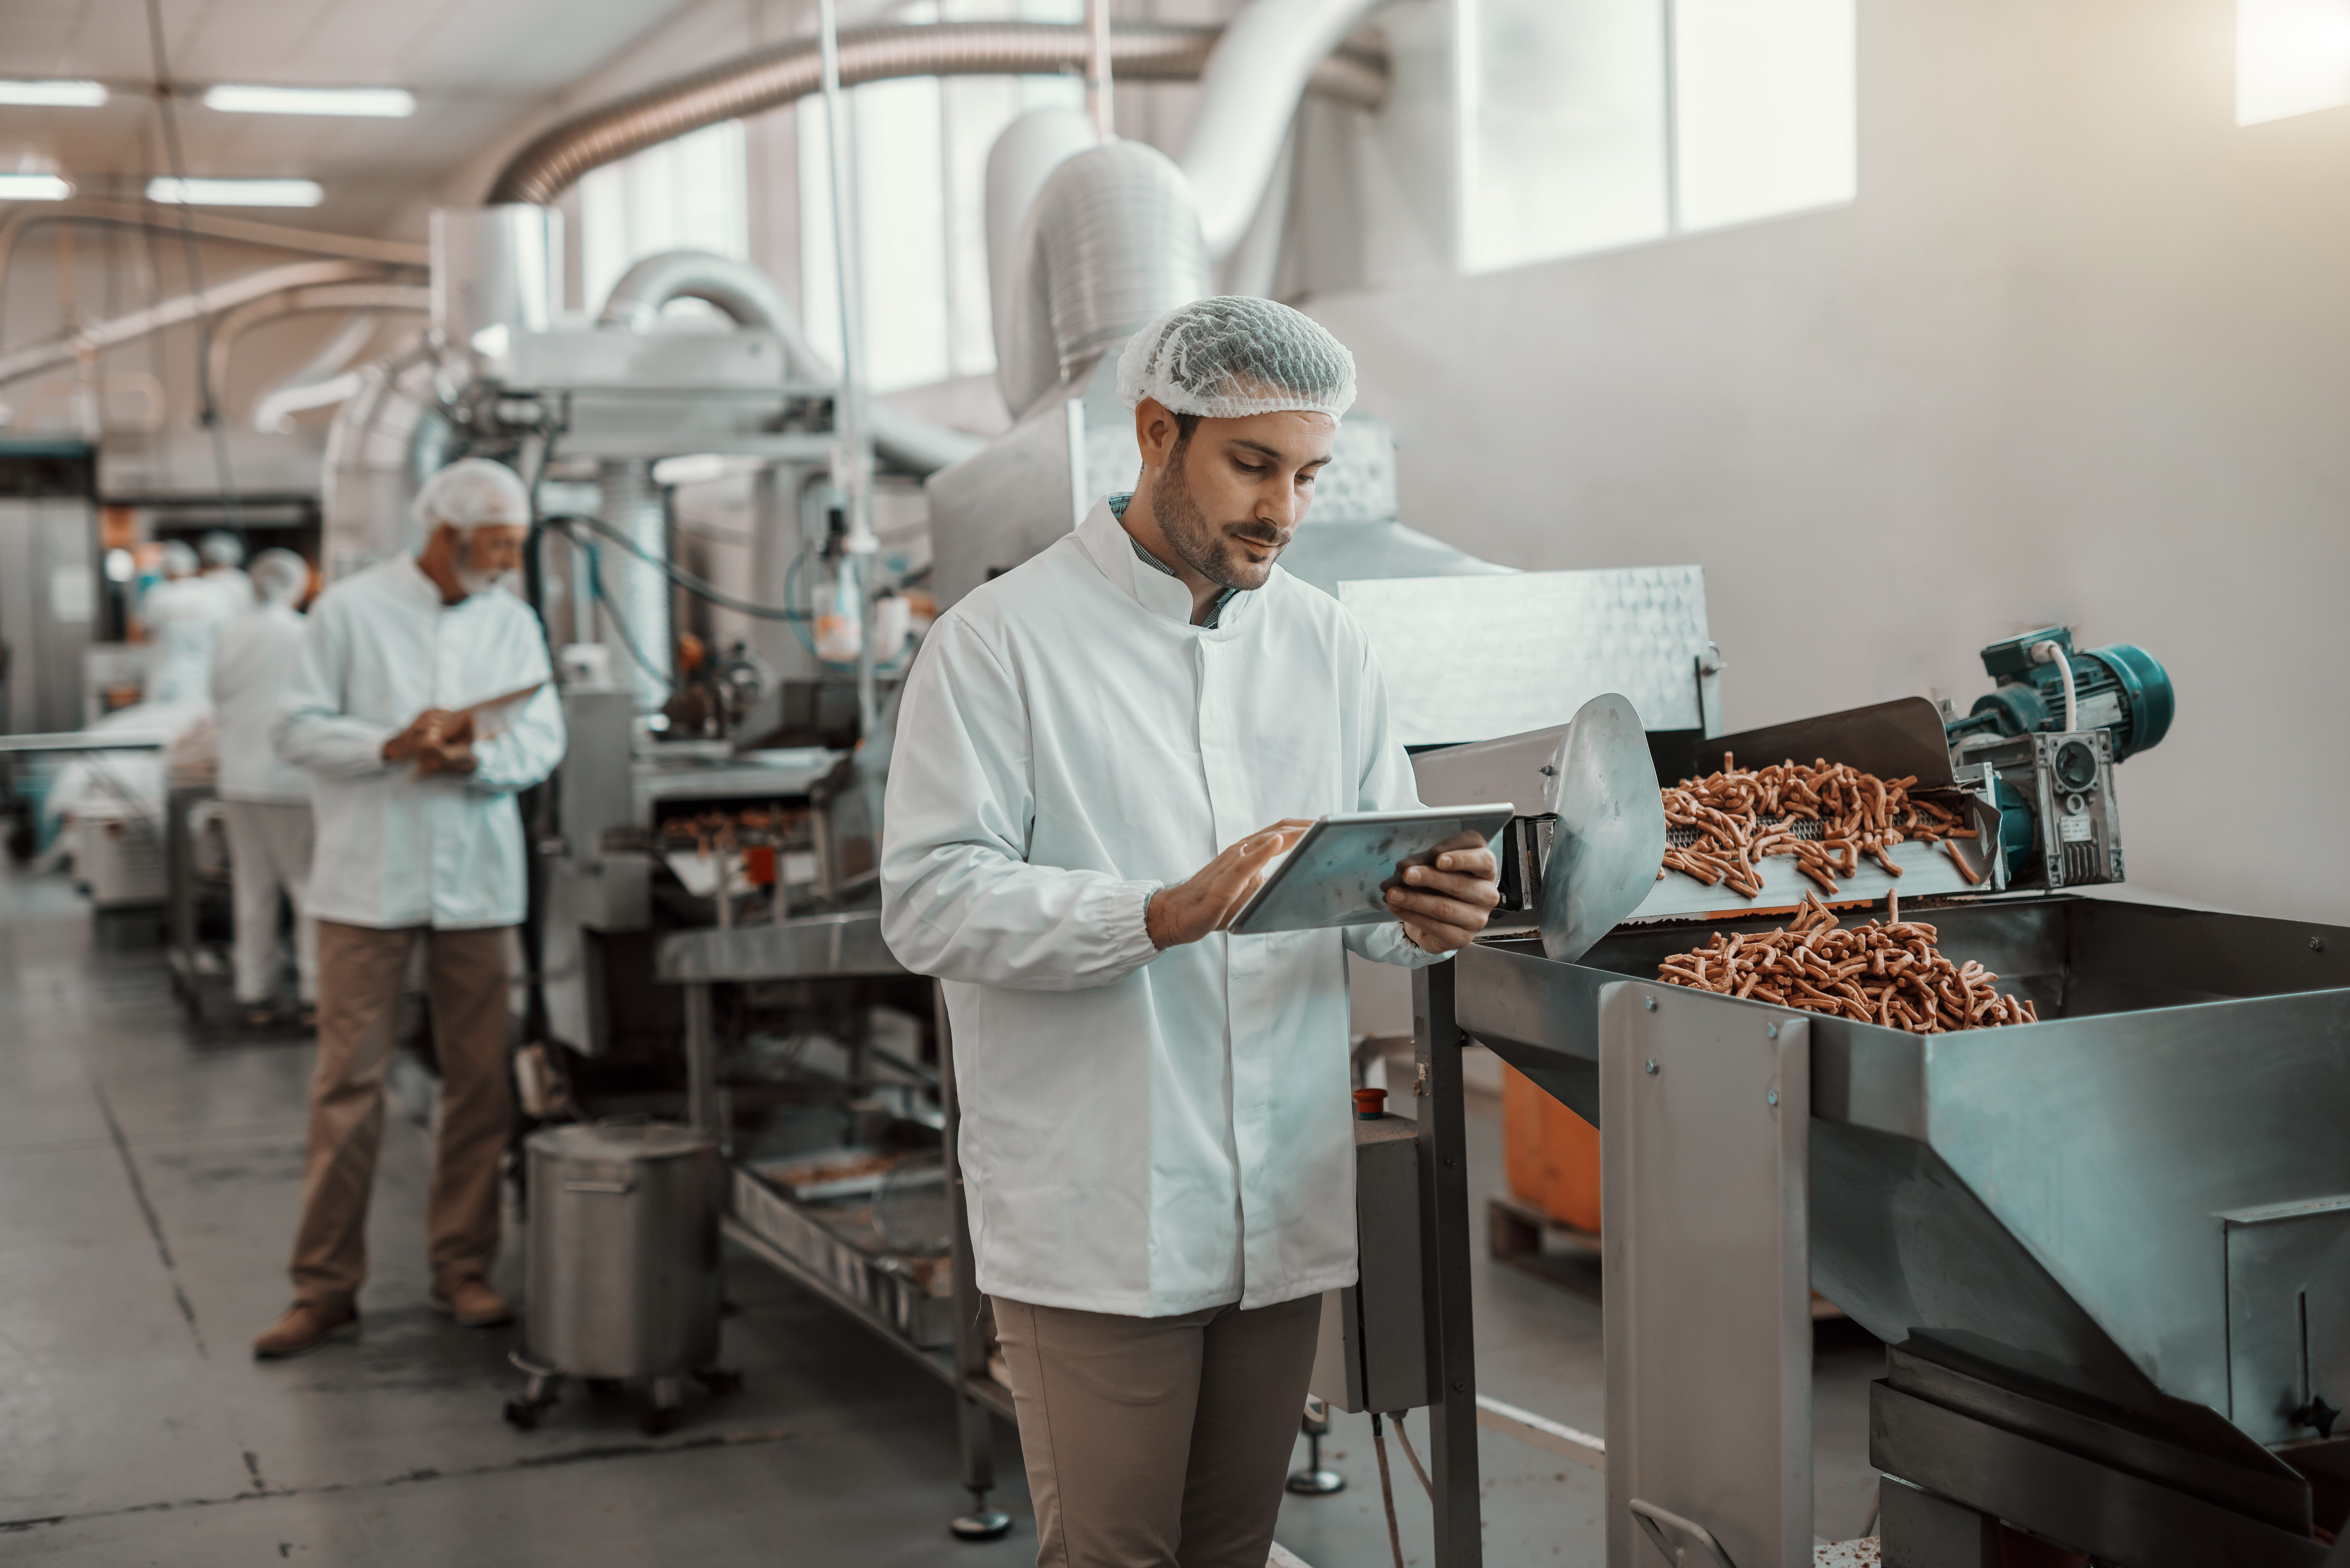 man working in food manufacturing plant